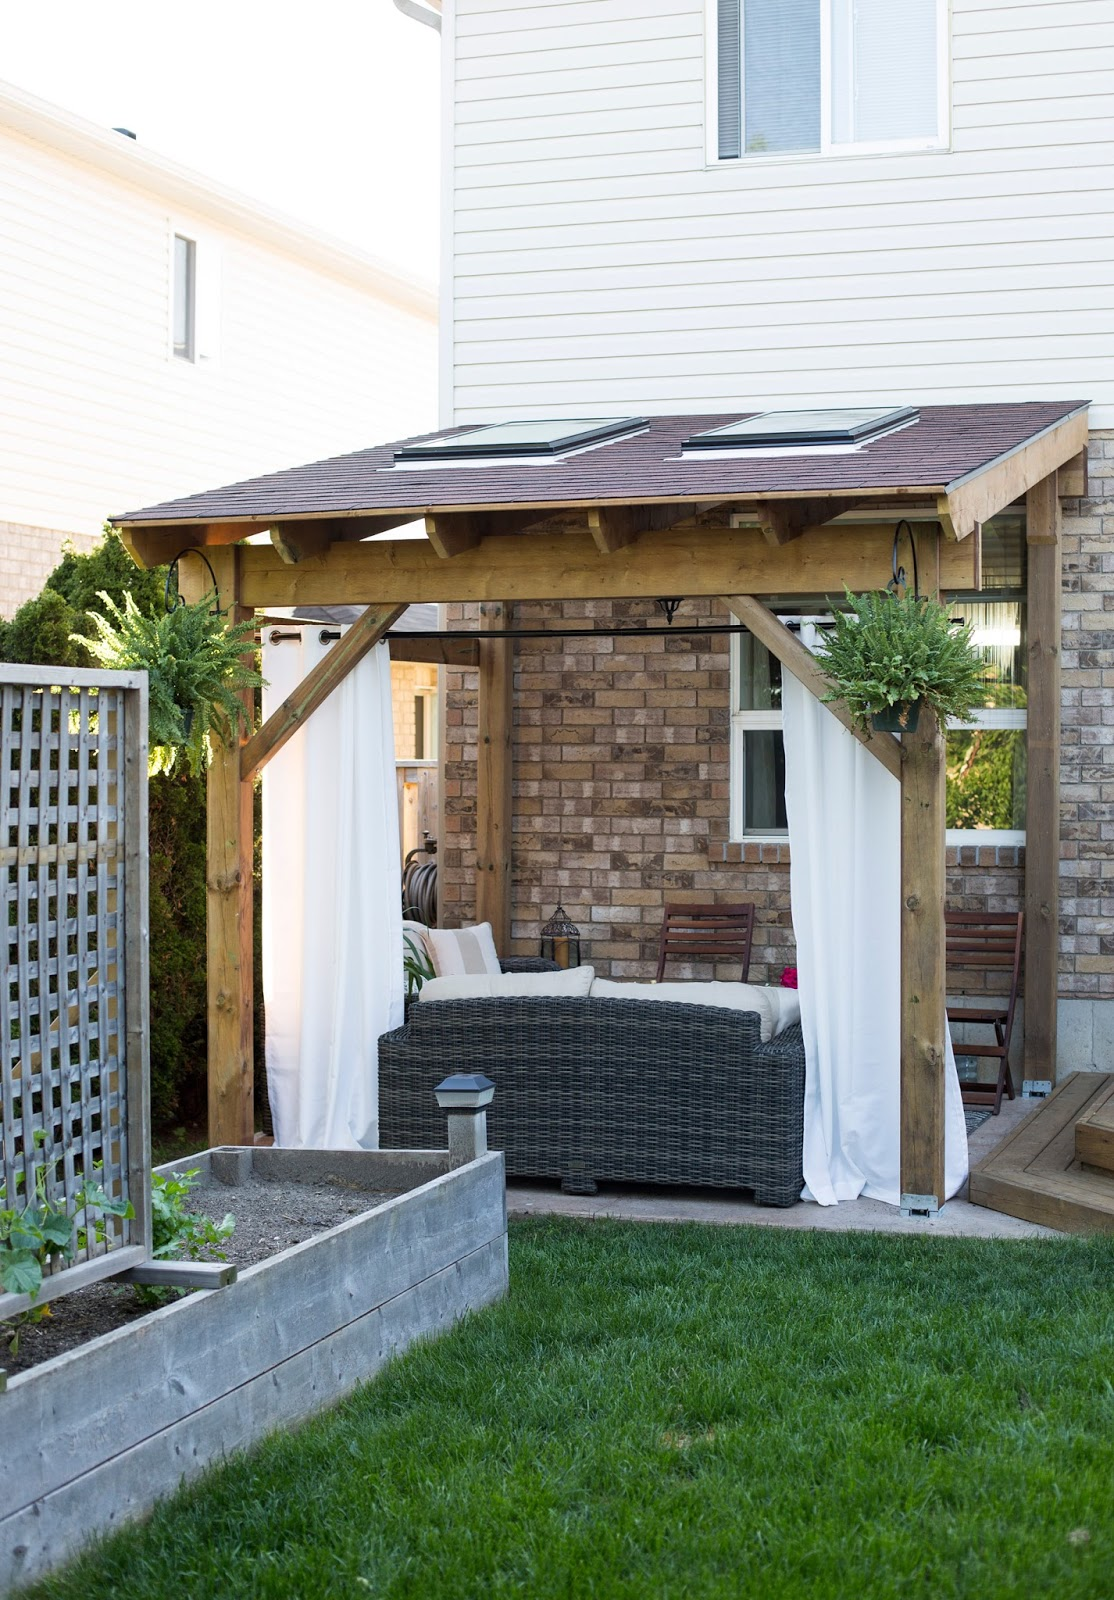 hdblogsquad how to build a covered patio - How To Build A Patio Cover